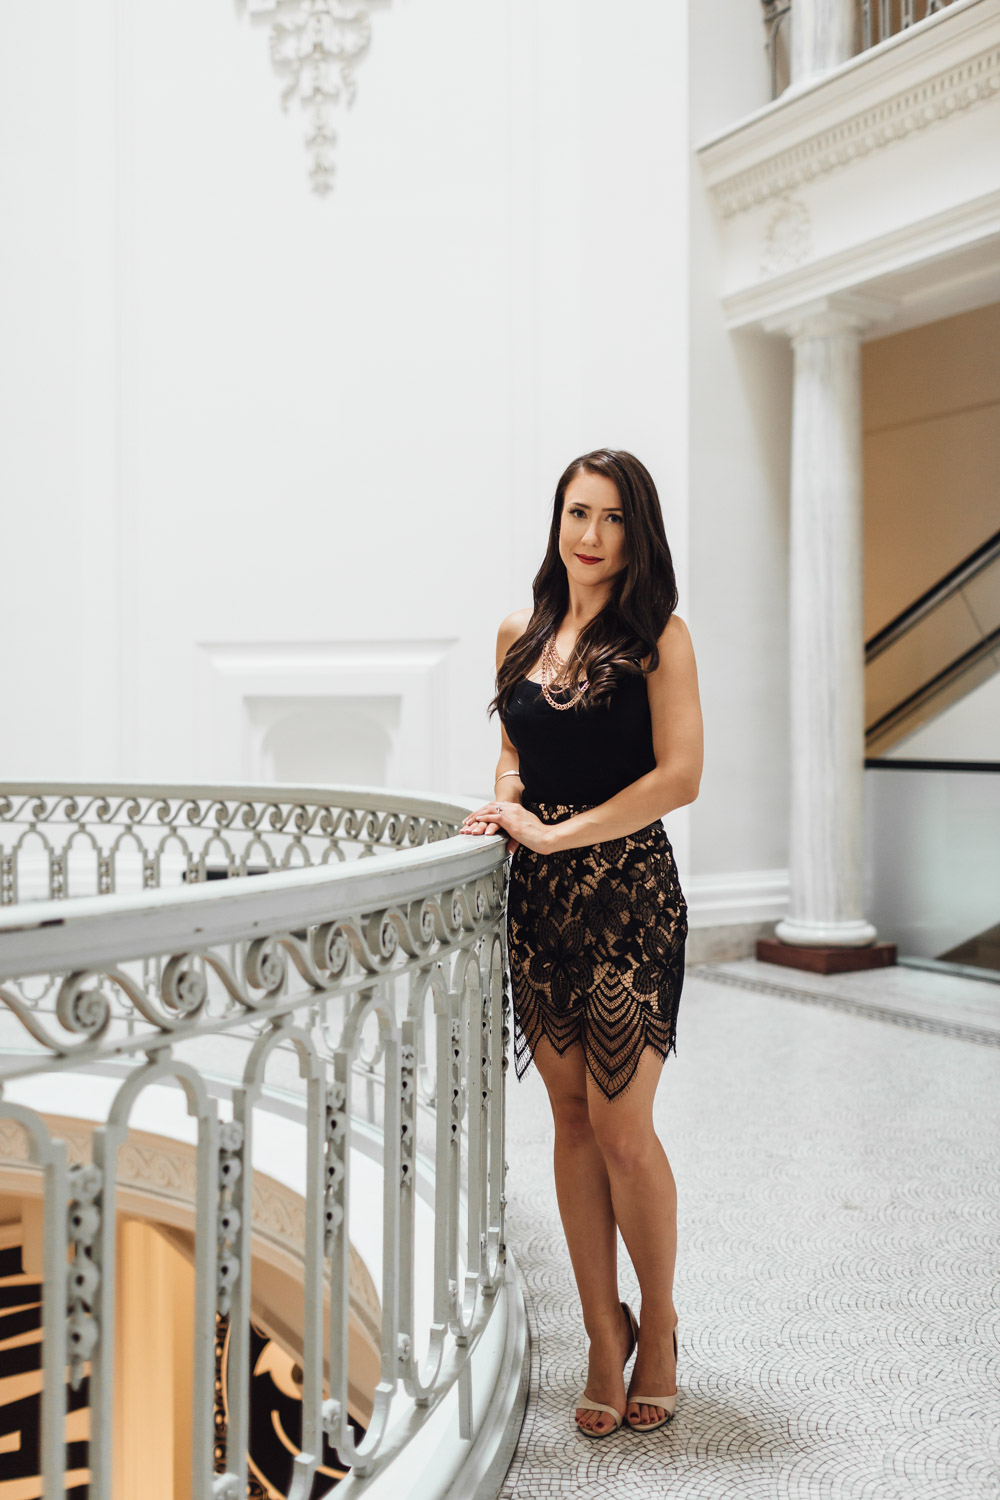 shannon bone vancouver art gallery engagement photography bc